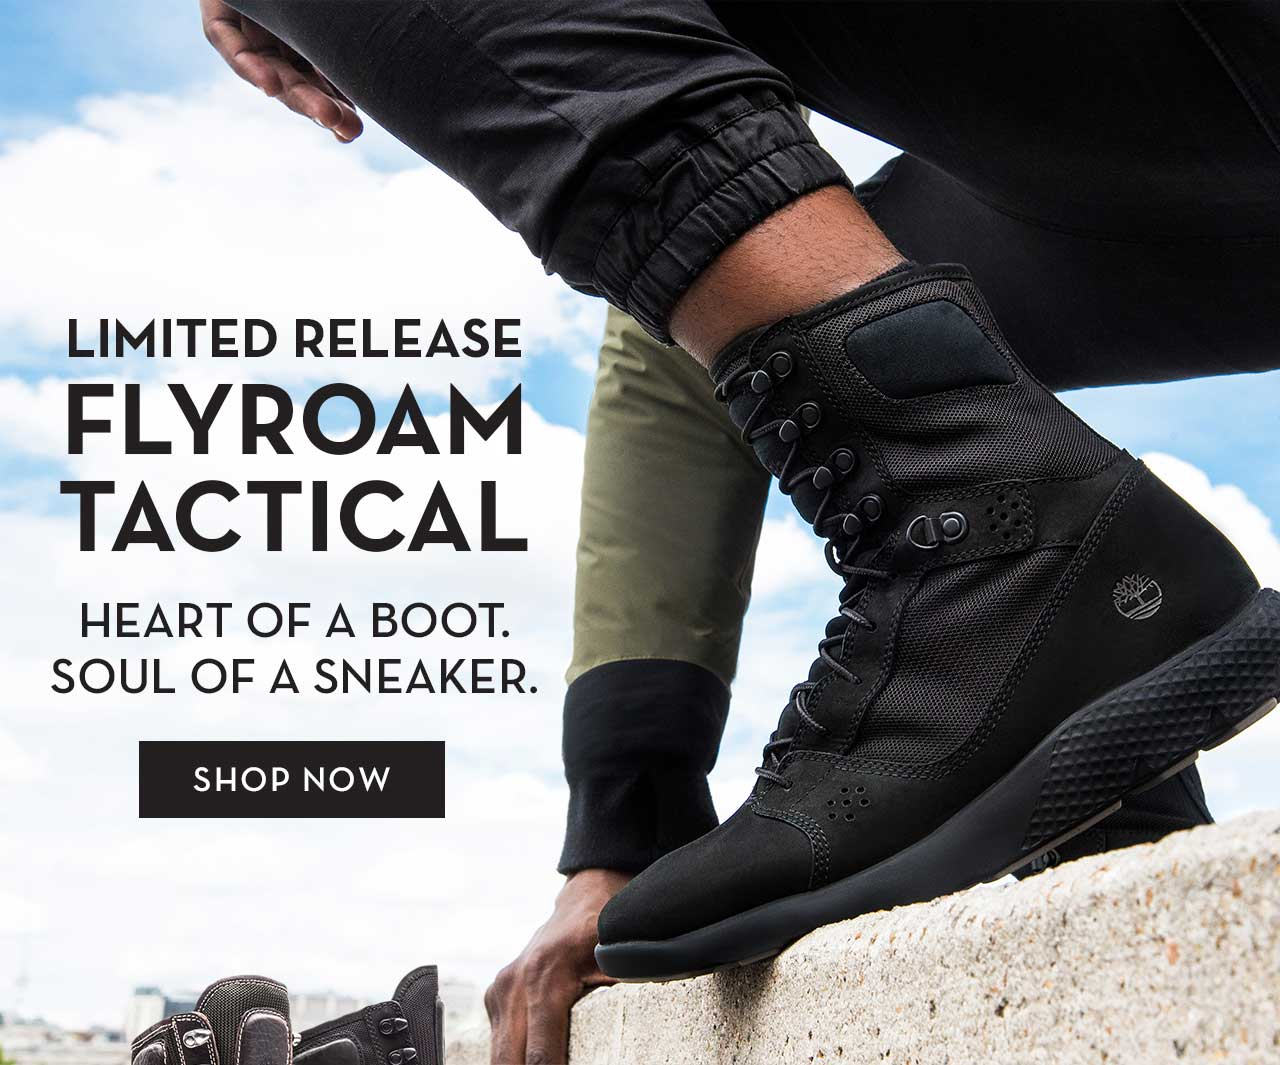 5ebd3c6f5a0 Timberland: Limited Release FlyRoam Tactical Boots   Milled